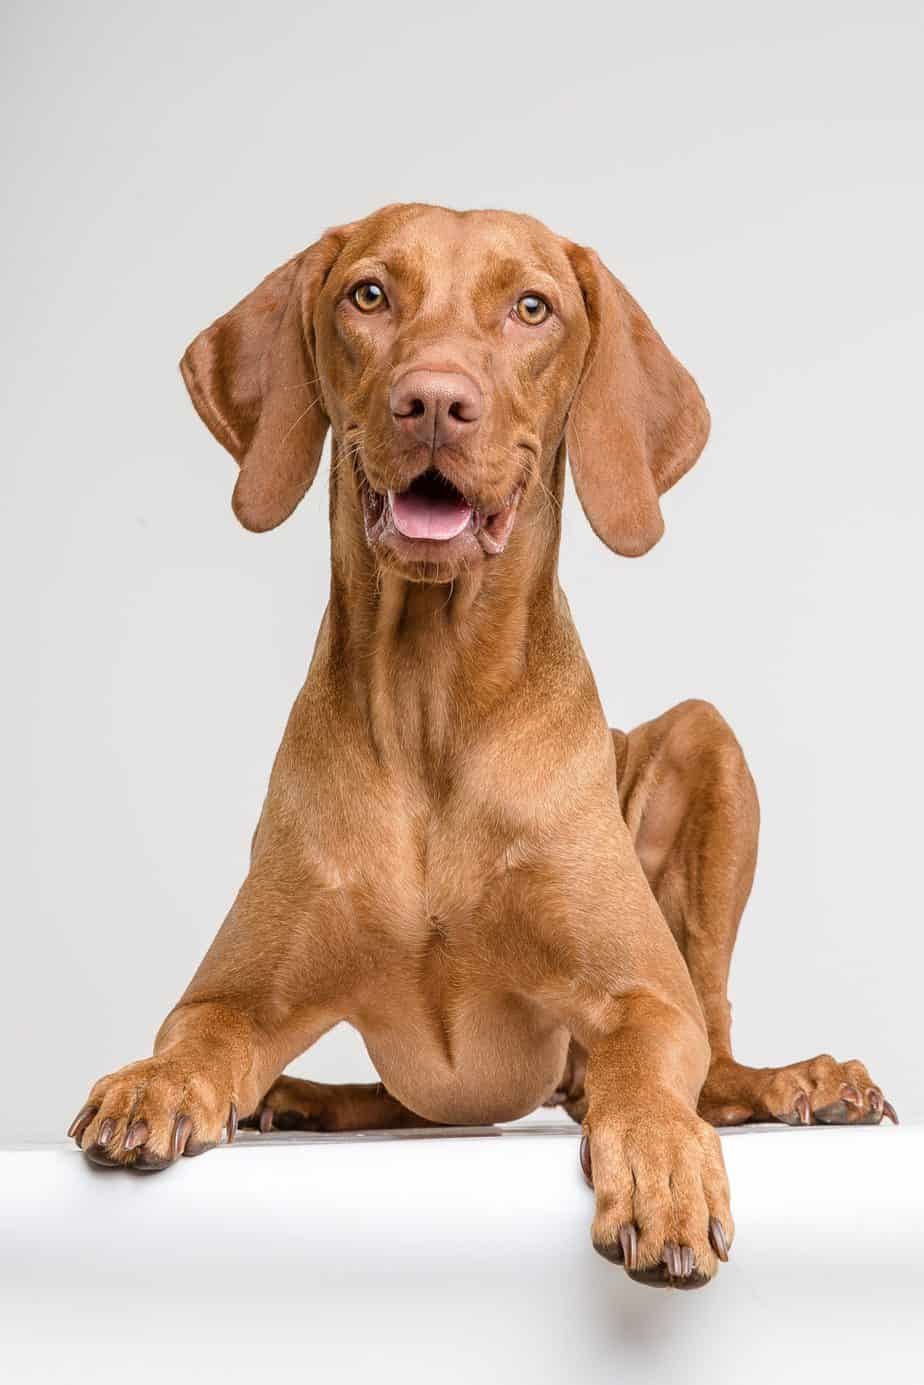 Vizsla puppy on white background. Start training your Vizsla as a puppy. These active, intelligent dogs are curious and can be manipulative.